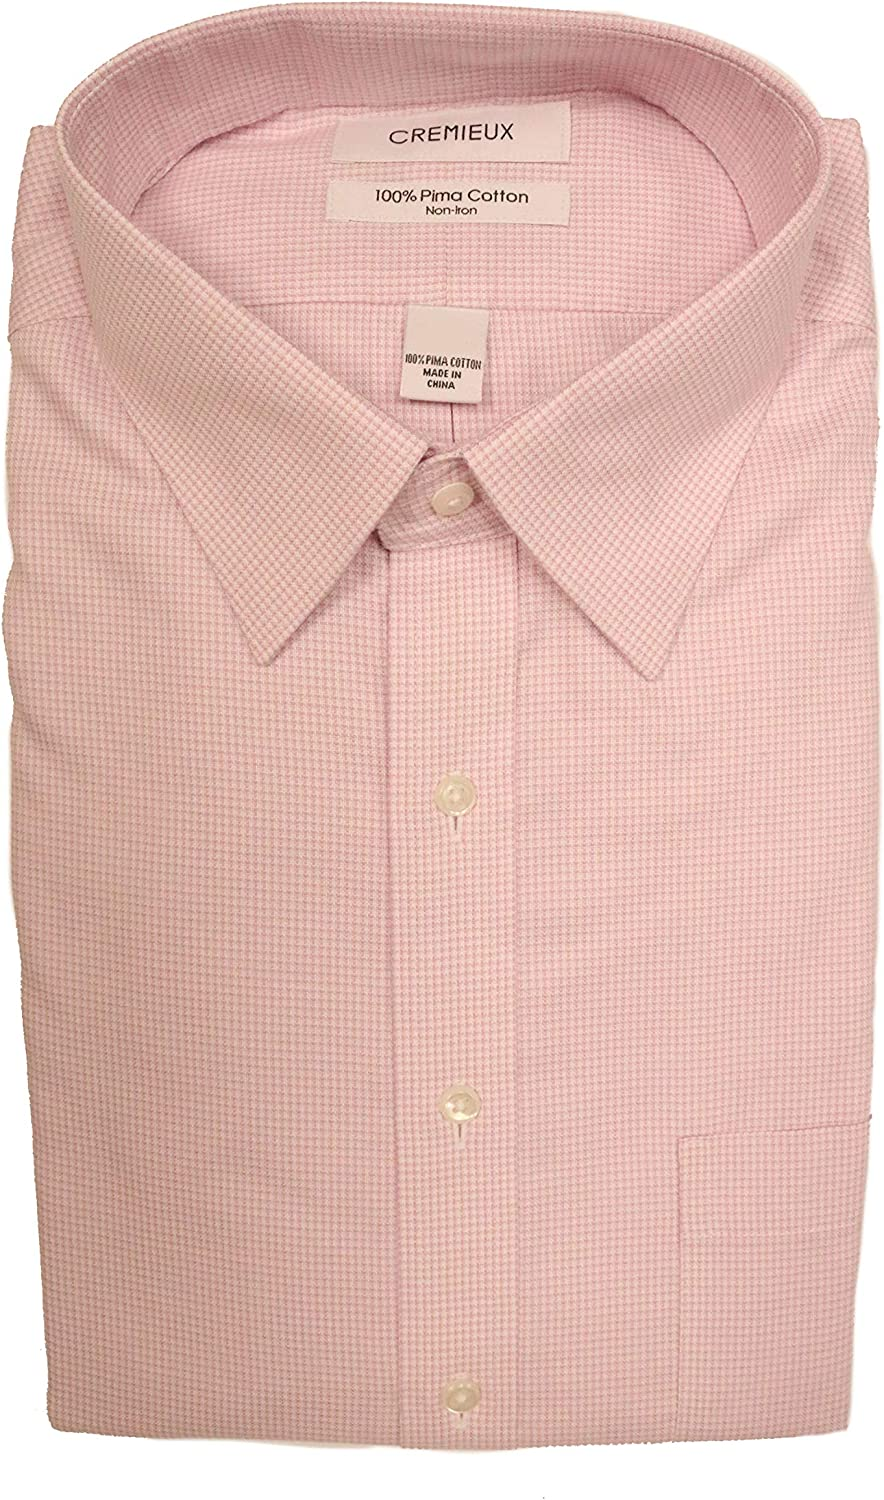 Cremieux Non Iron Classic Fit Spread Collar Plaid Dress Shirt S95DH012 Pink